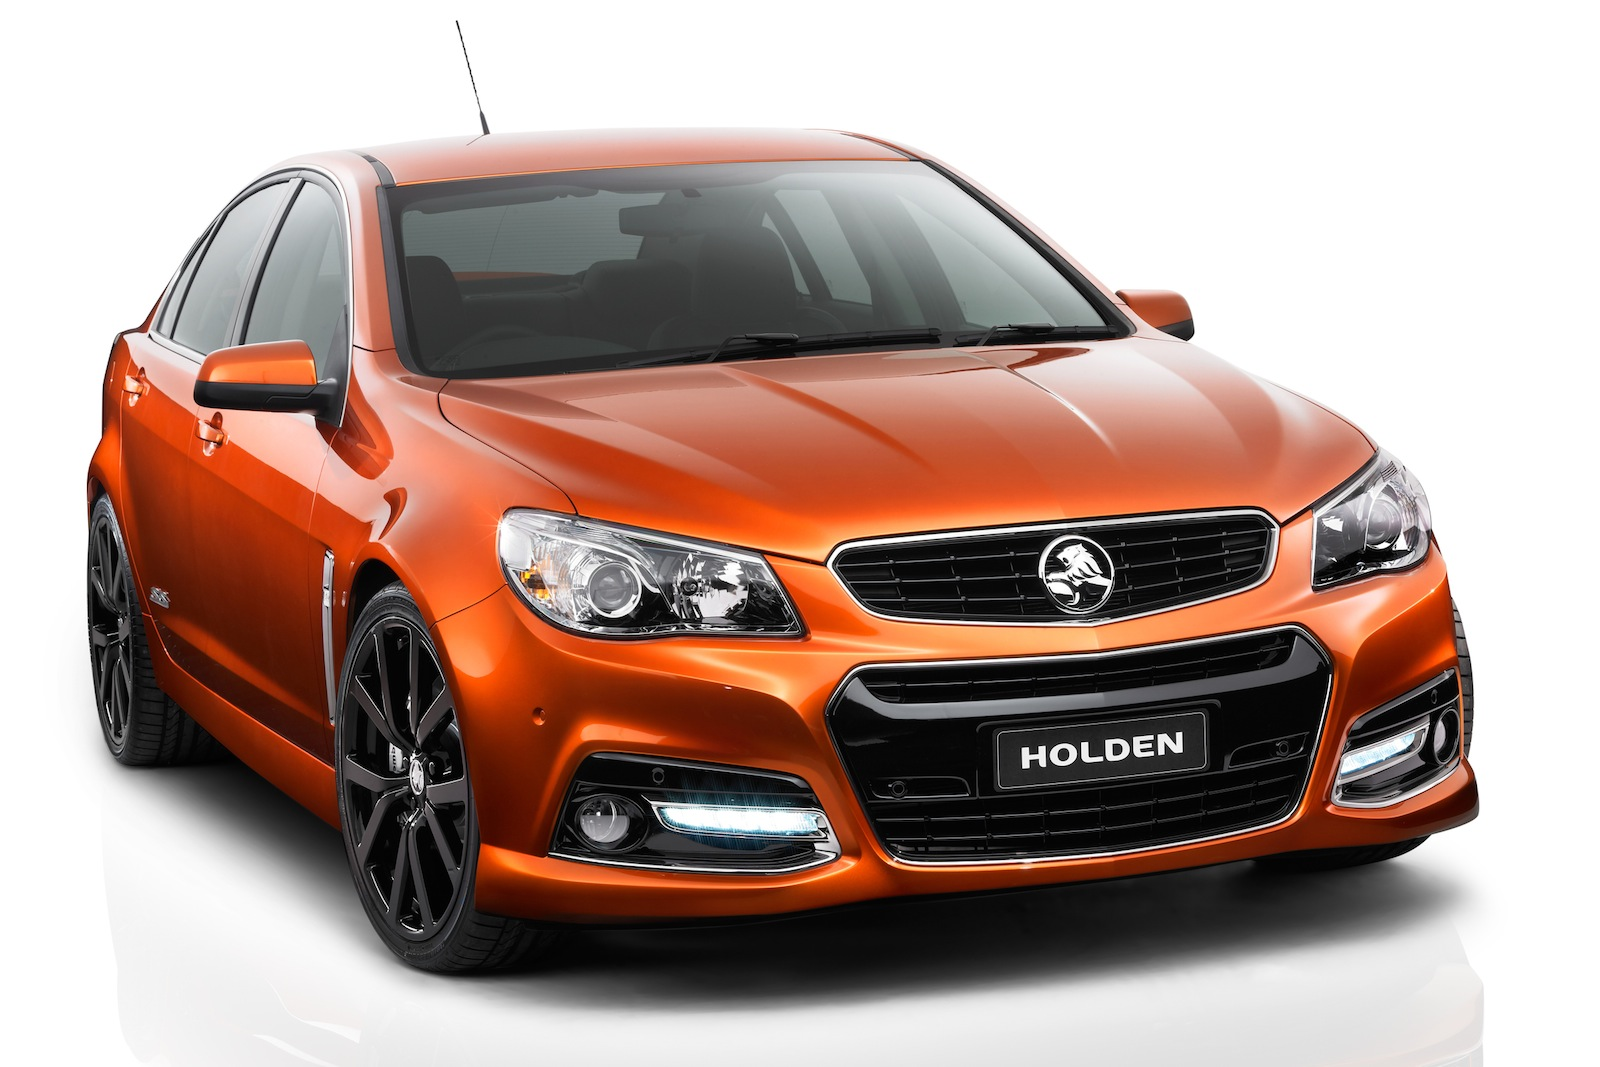 Holden cars